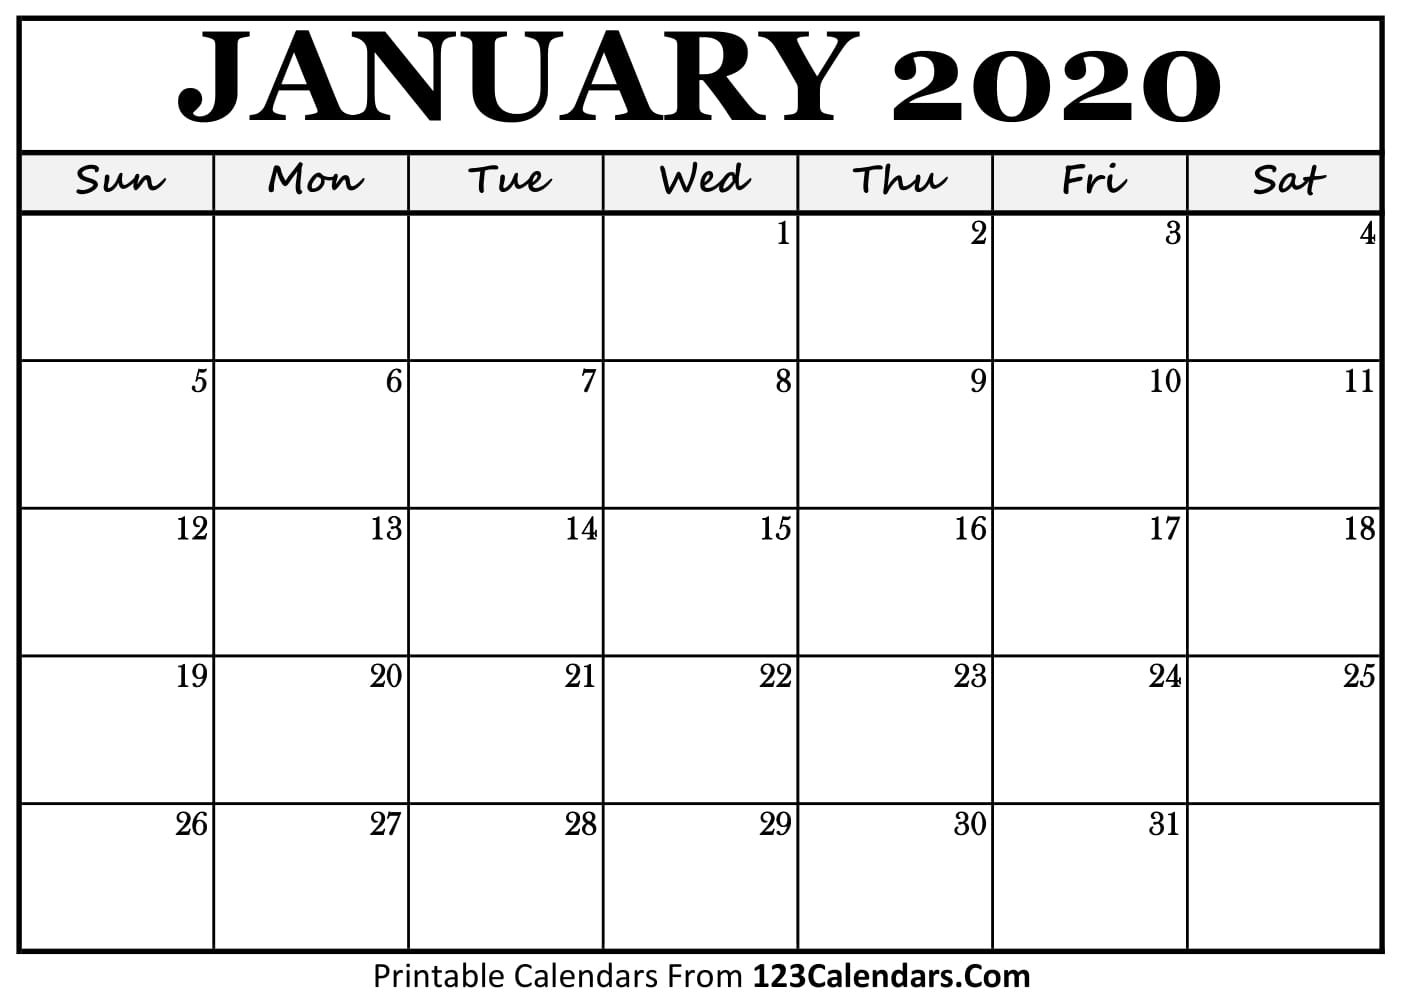 Free Printable Calendar | 123Calendars I Need A Calendar I Can Edit And Print Out Free